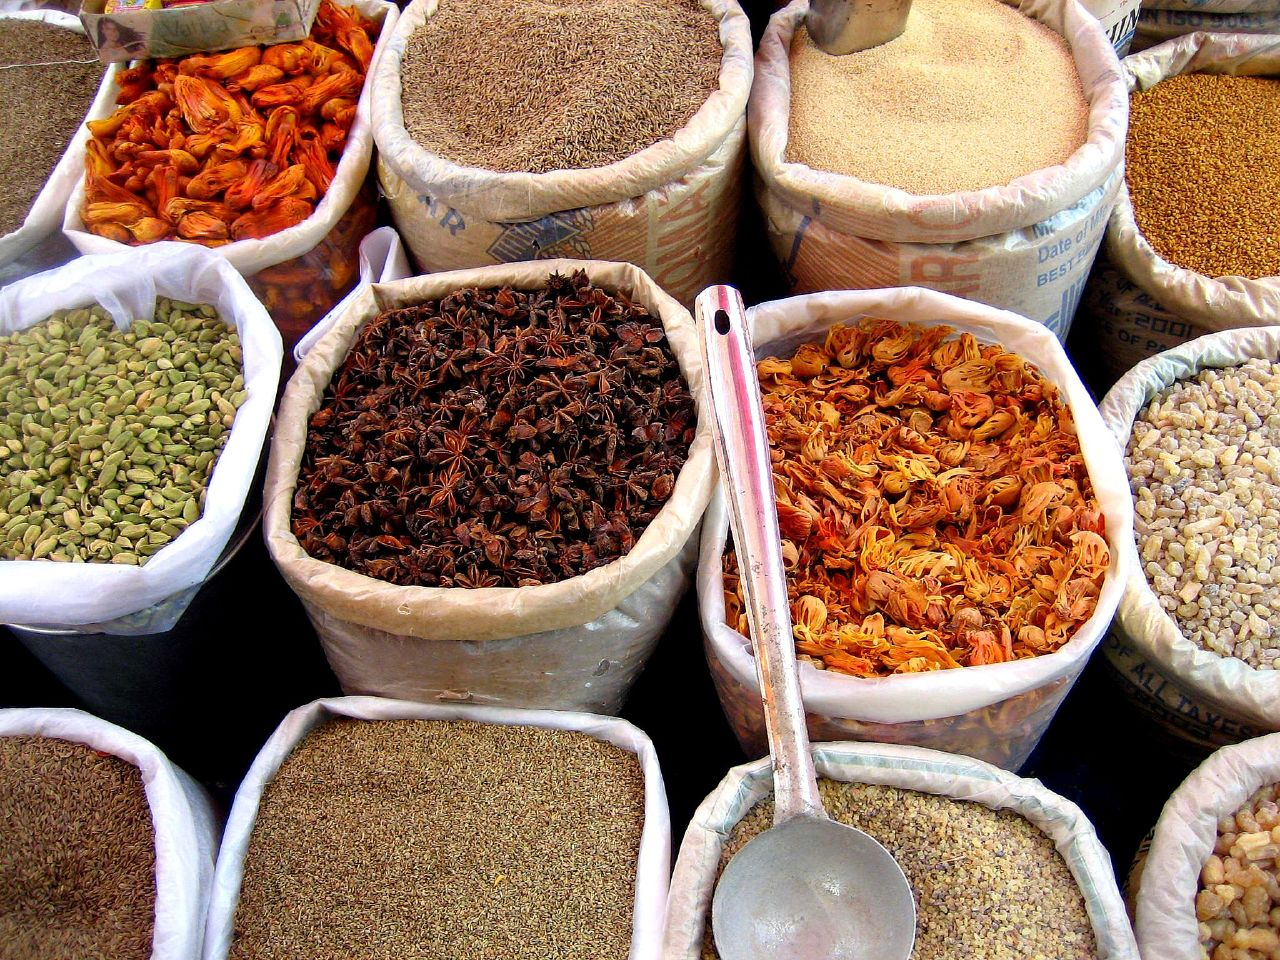 Spices_in_an_Indian_market.jpg